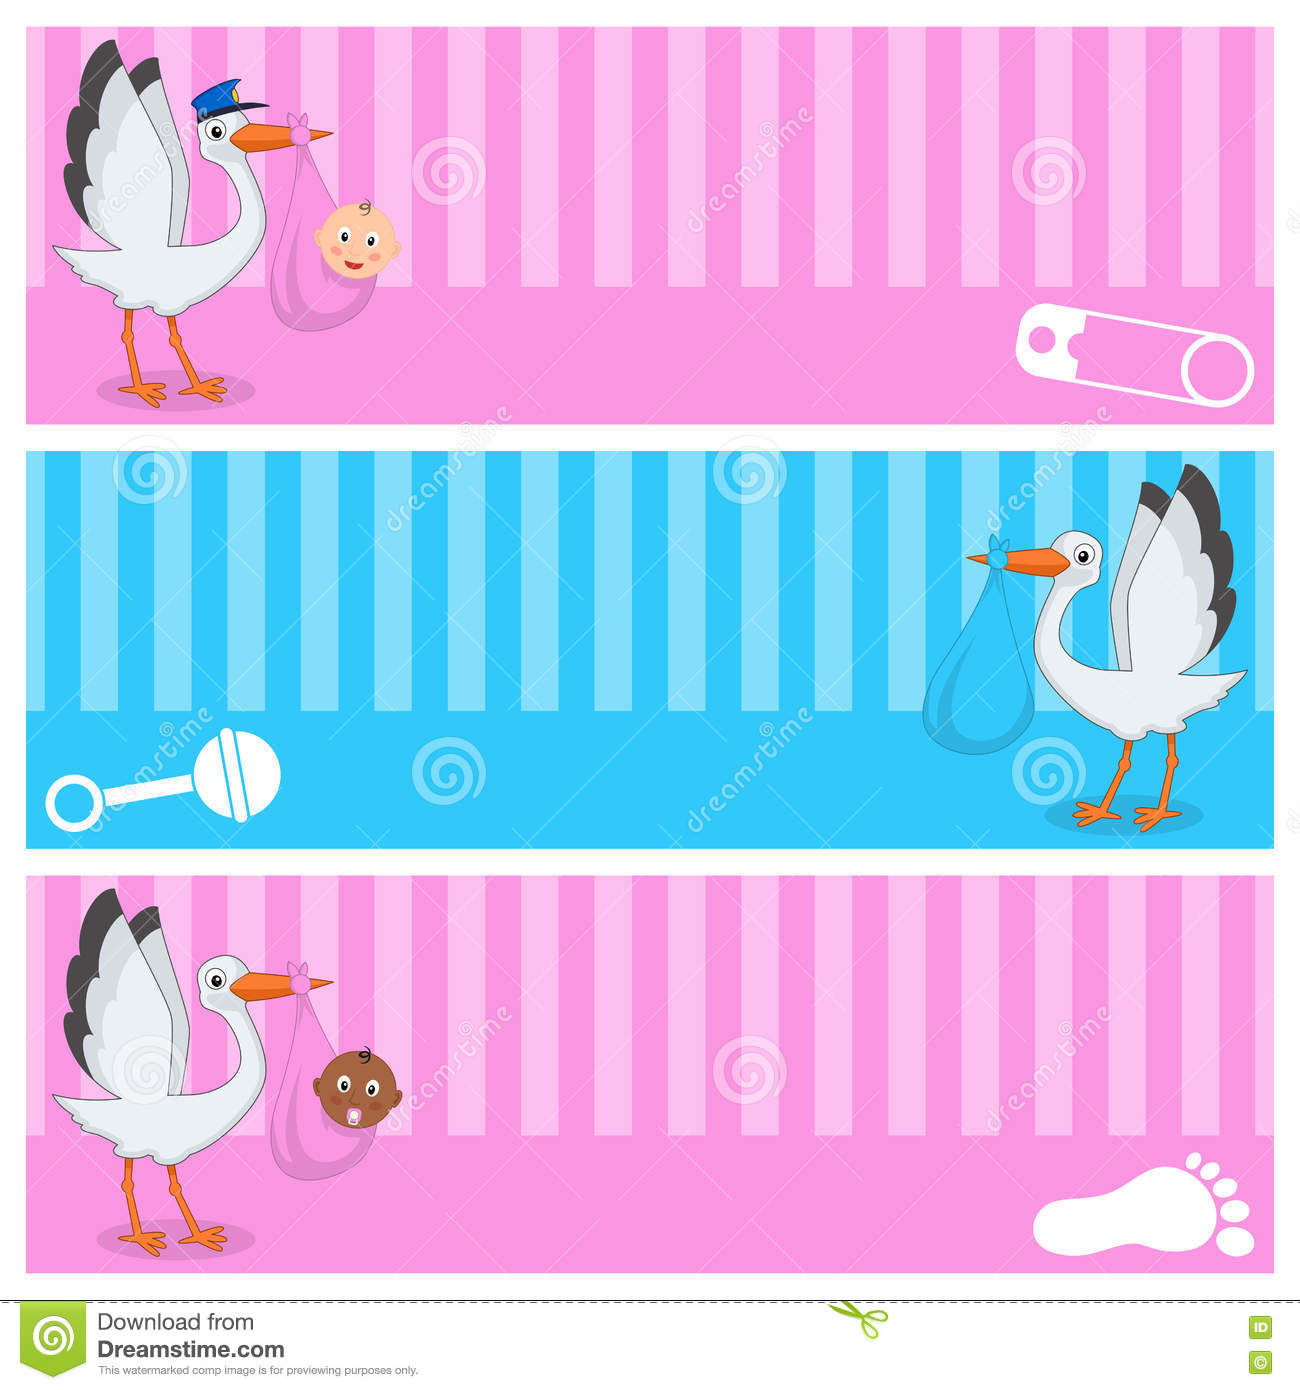 Stork With Baby Boy & Girl Banners Set Stock Vector - Image: 70793618